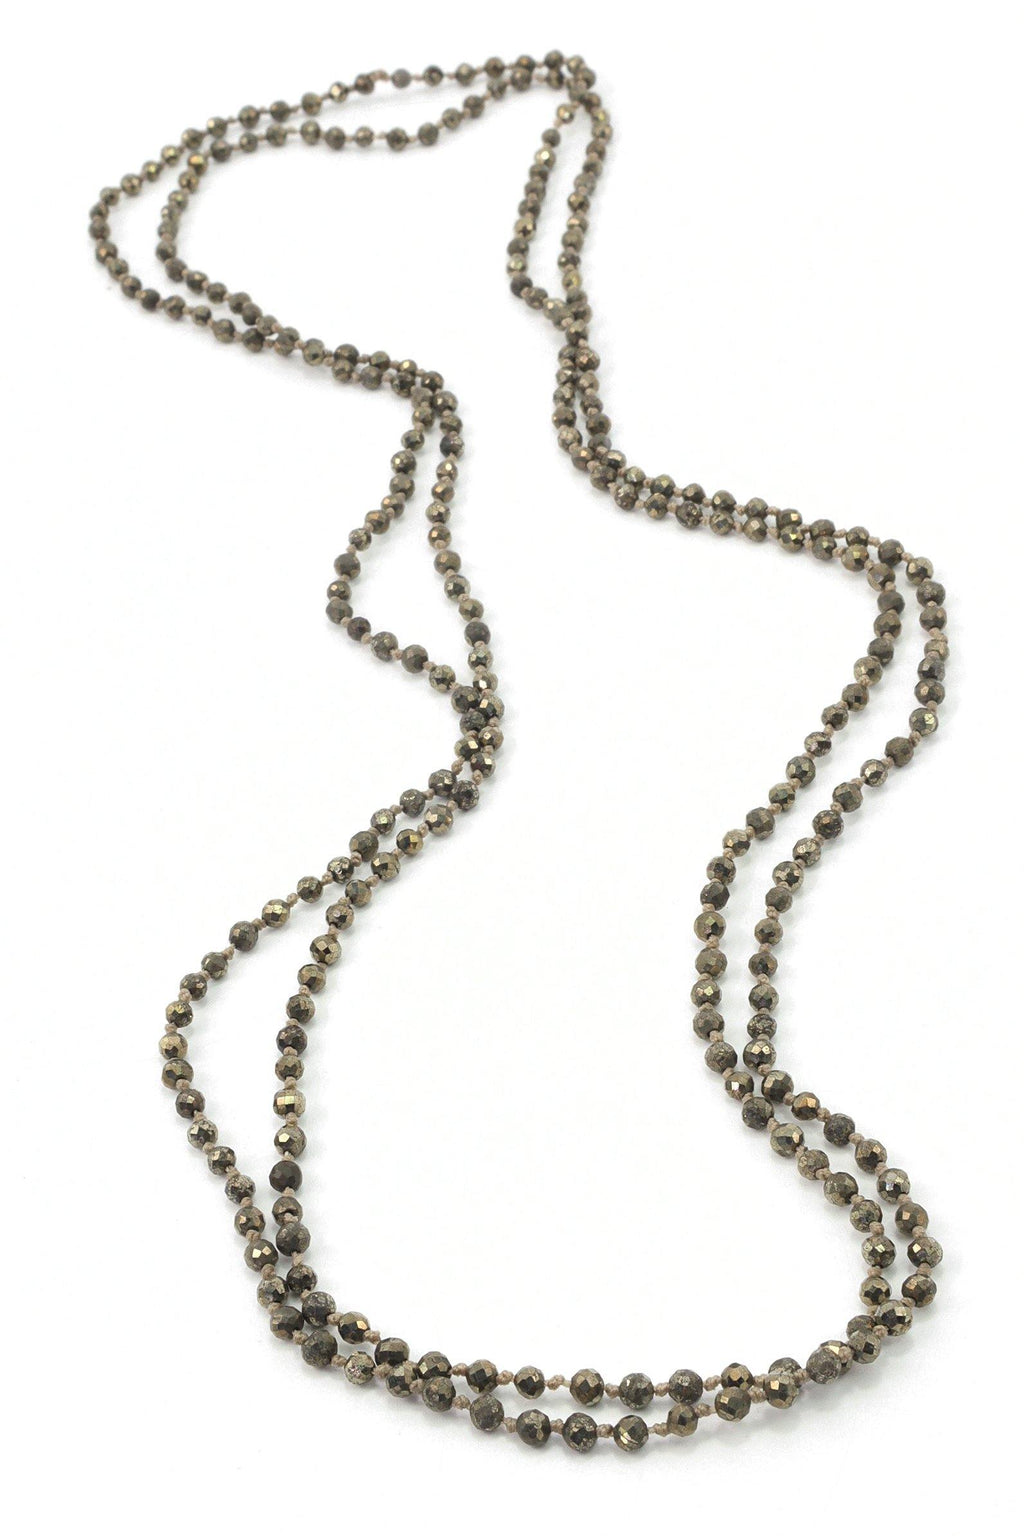 This pyrite necklace is a long knotted necklace that can be used as a short or long choker. A pyrite stone necklace is also known as fool's gold because of its silvery gold metallic color. This also looks like a metallic stone the way it shimmers in the light. But this hand knotted gemstone necklace will come in so handy with your casual wardrobe because it's neutral color pallet can be worn with anything in the earthy tones